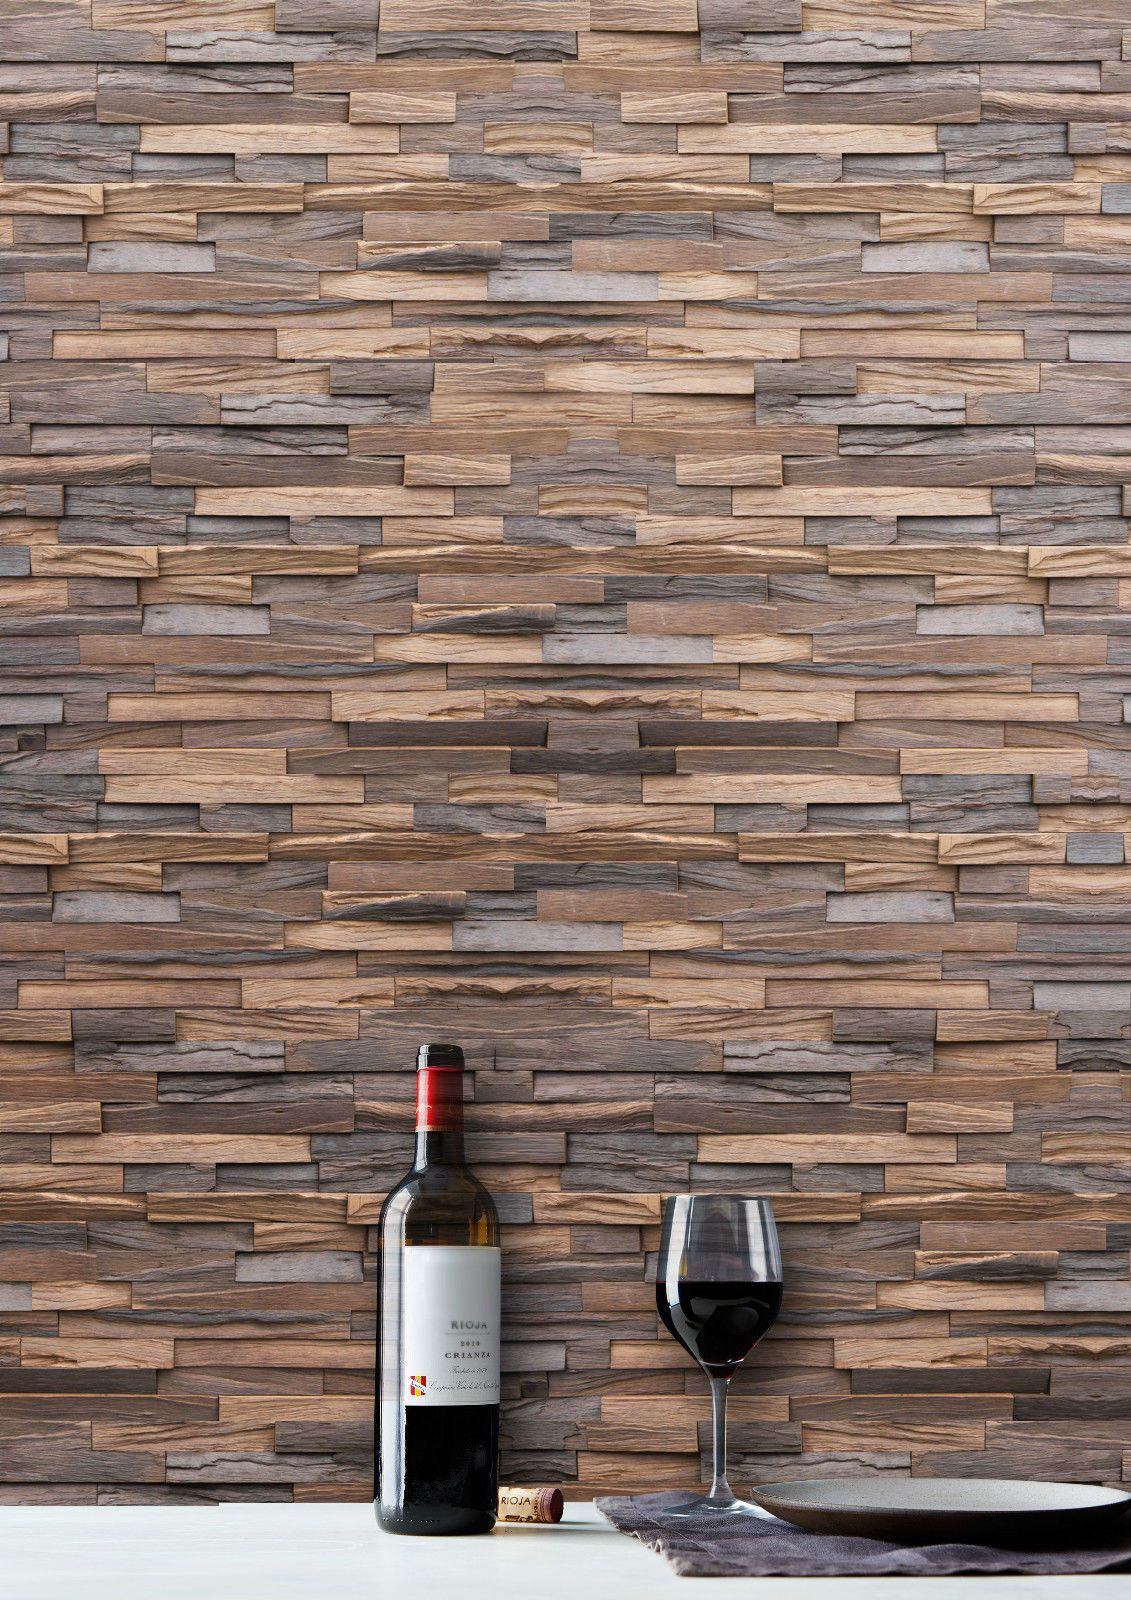 Heartwood Timber Wall Cladding Tiles Slips